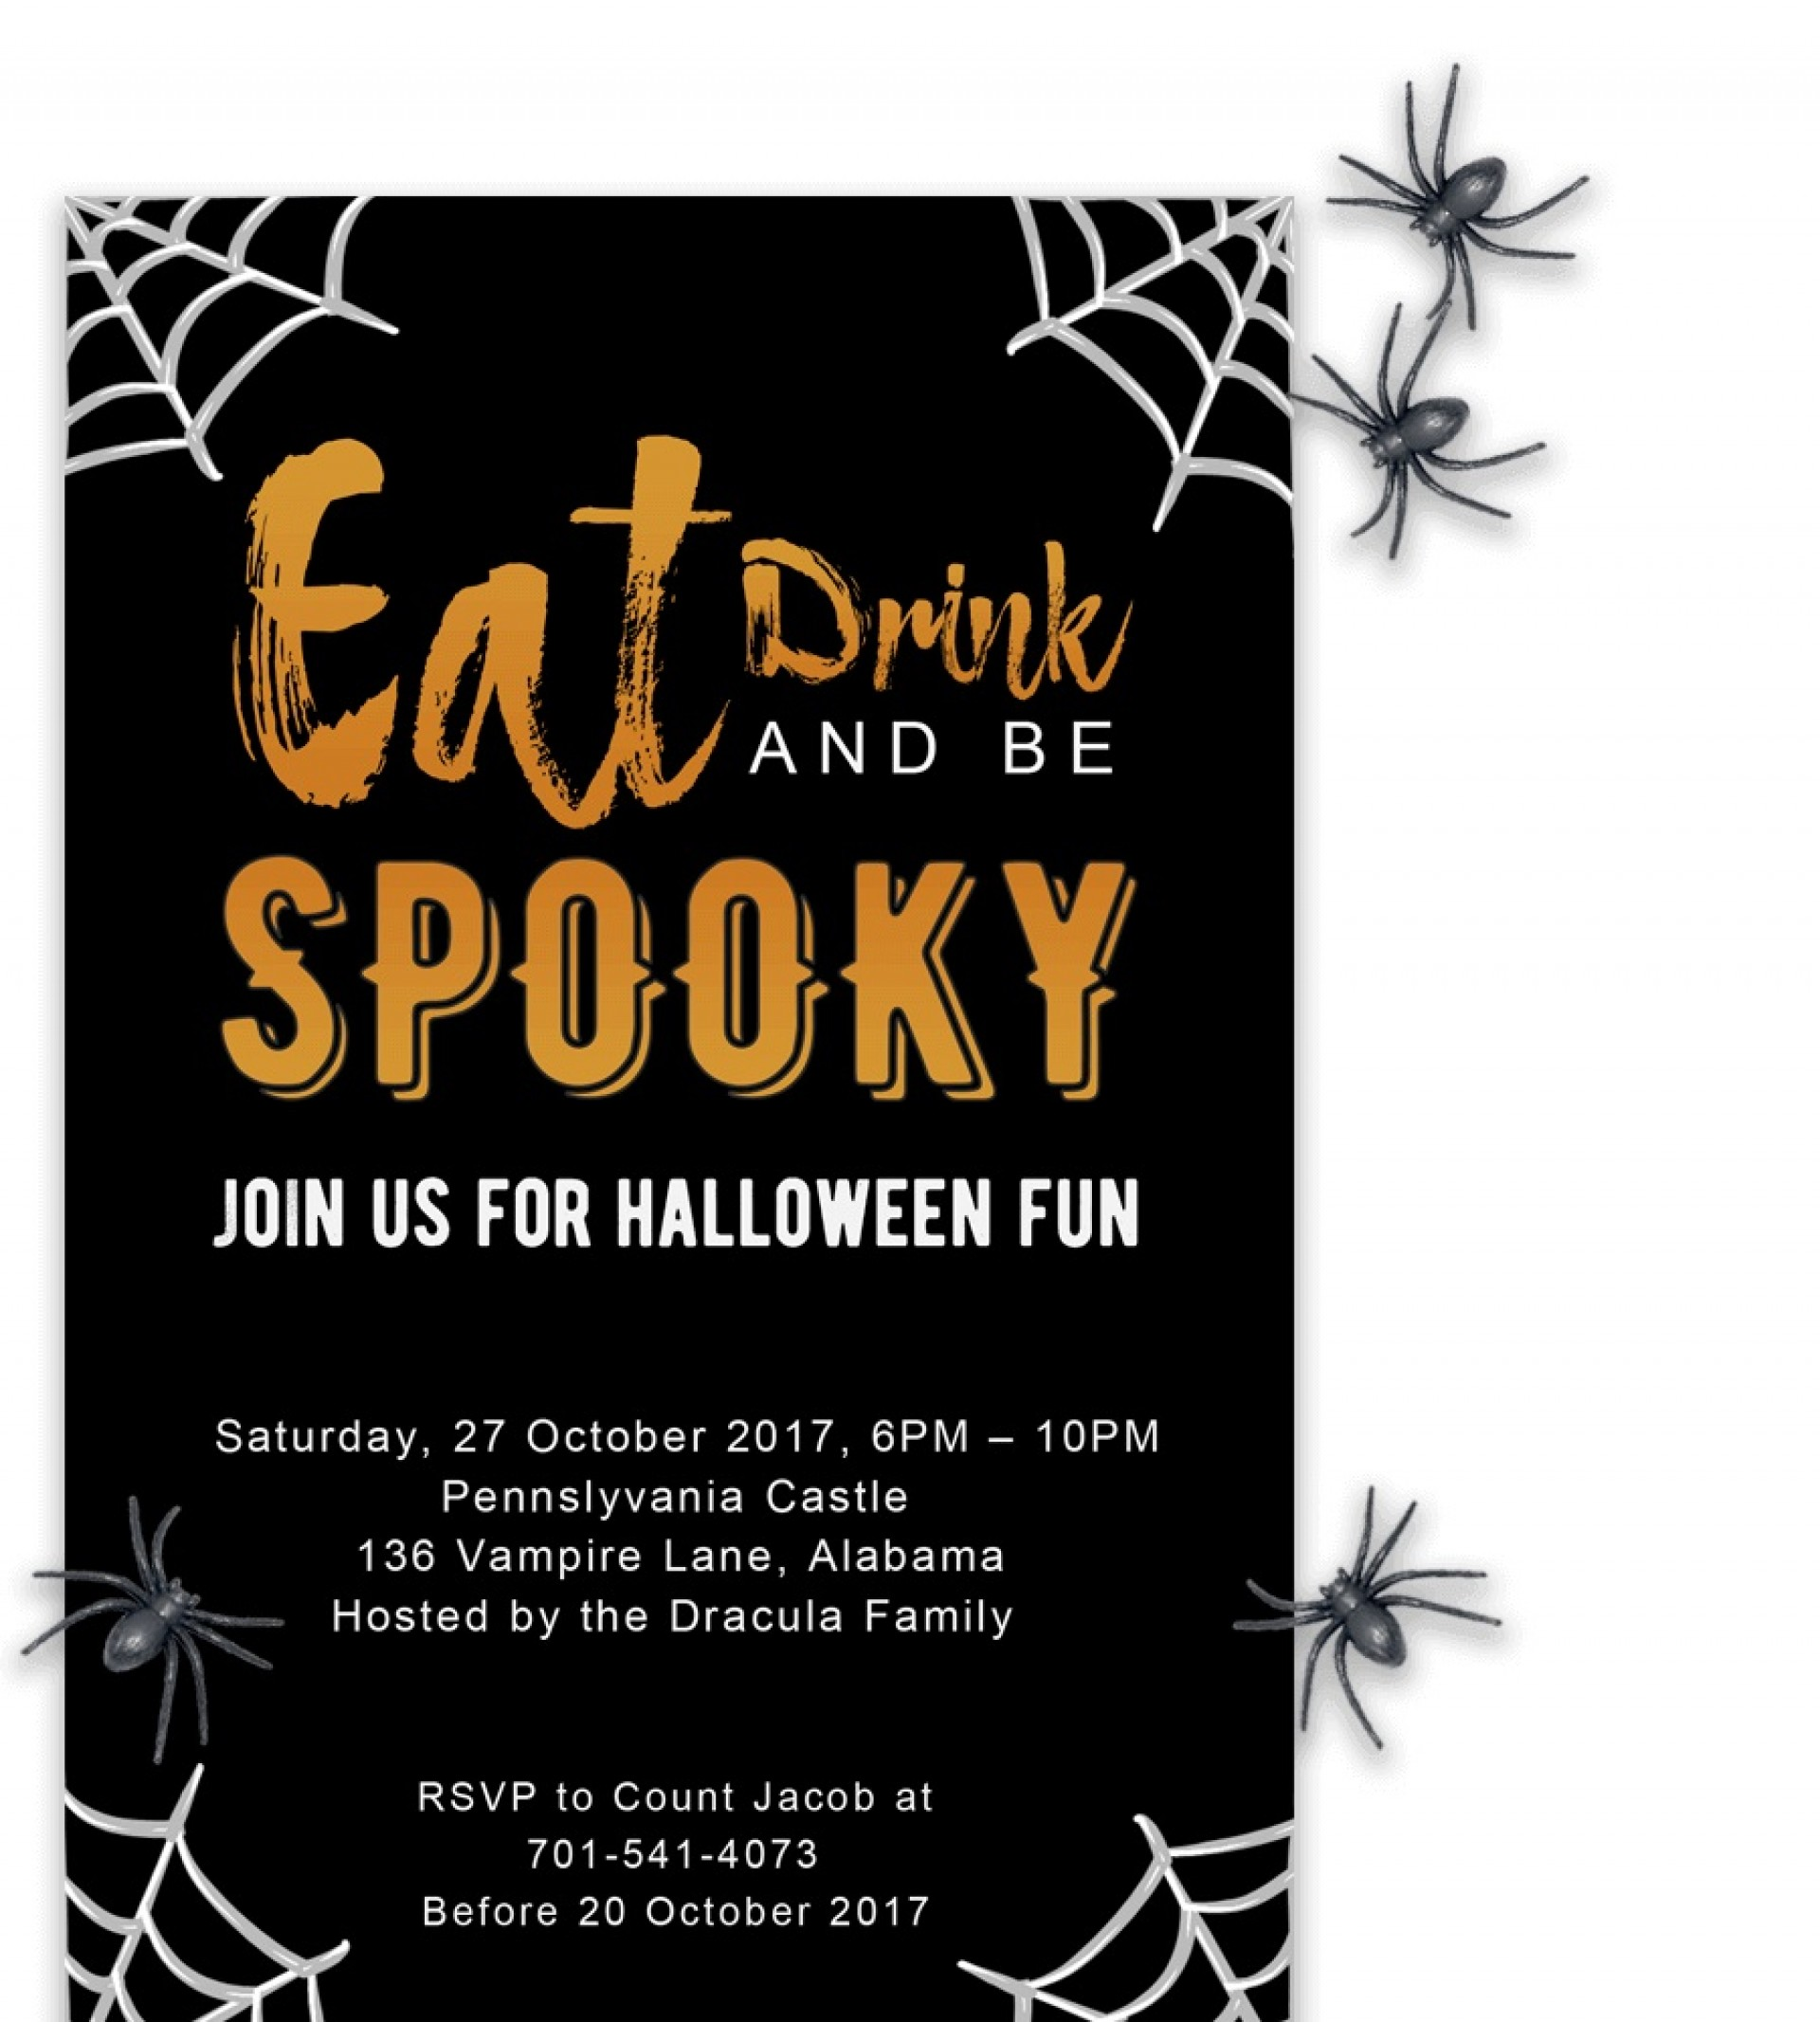 008 Wonderful Free Halloween Invite Template Picture  Templates Party Invitation For Word1920